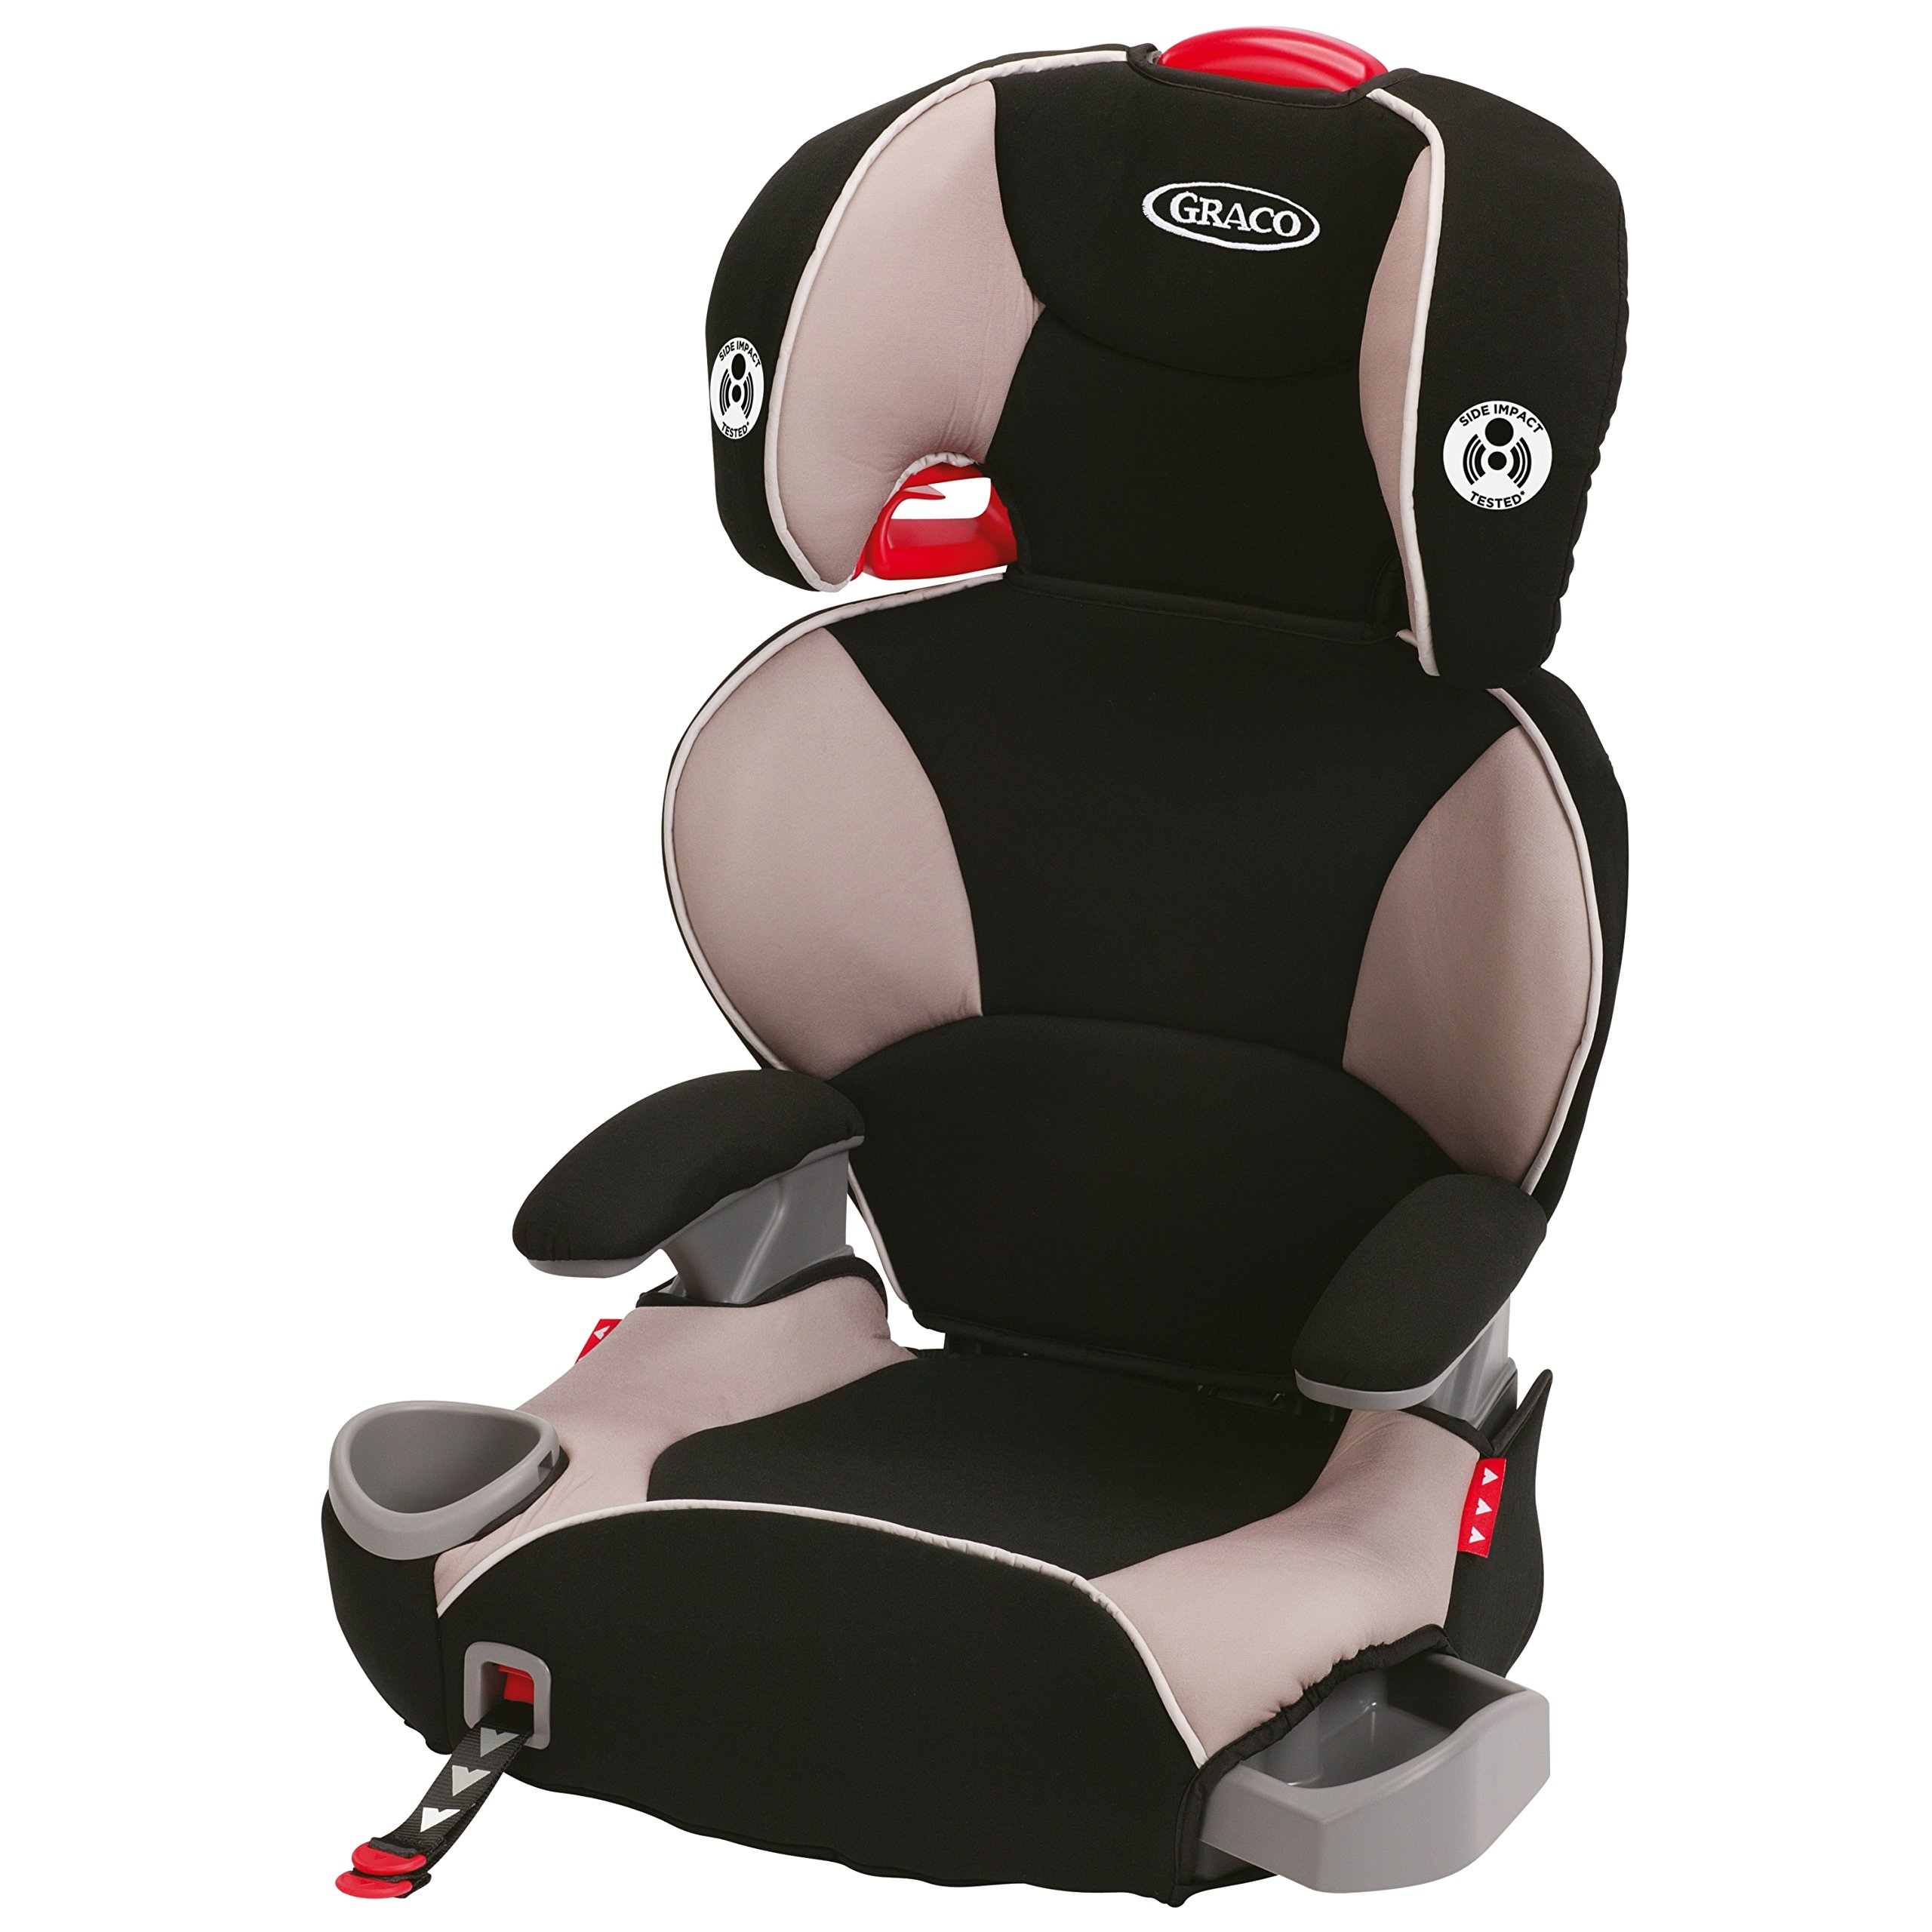 Graco Affix Highback Booster Car Seat with Latch System, Pierce